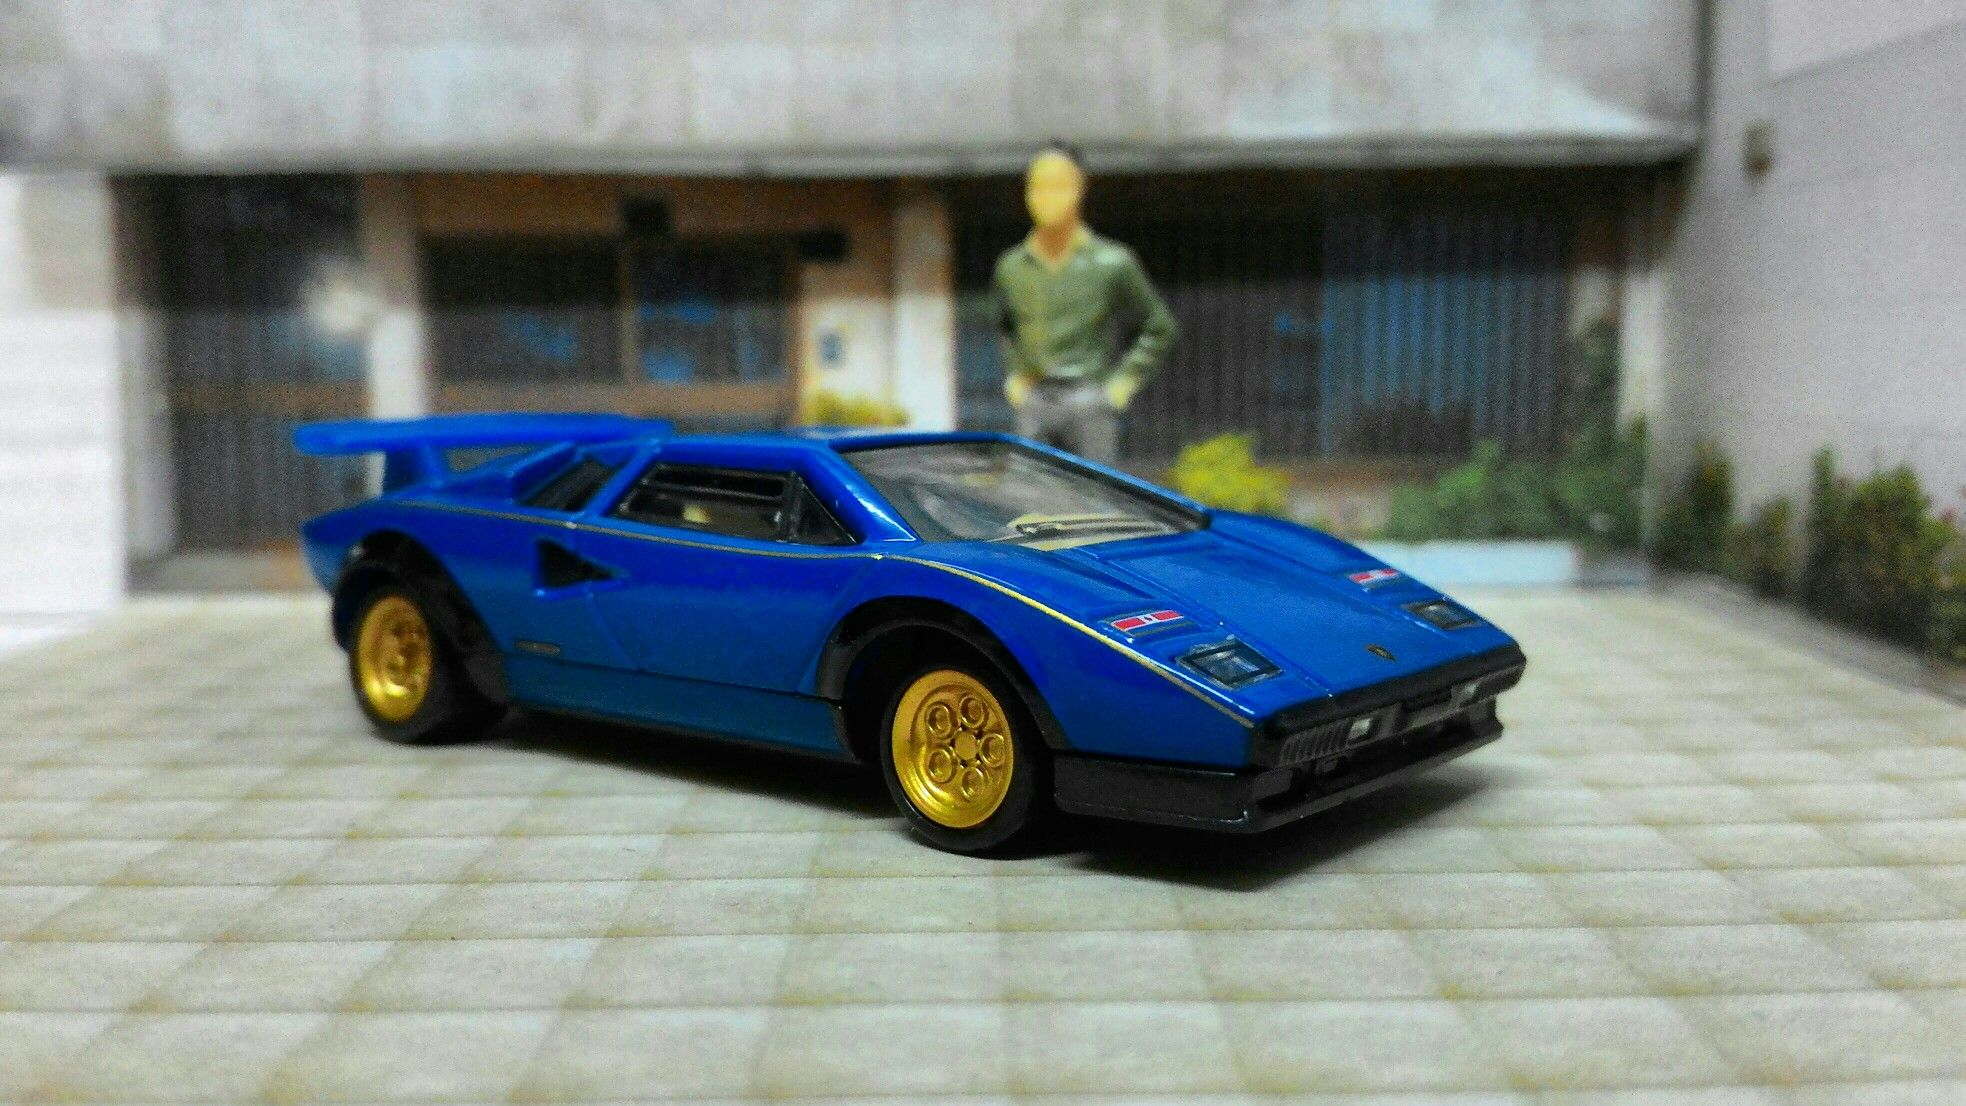 2ac5246404852b4d599c7b61622fab9f Mesmerizing Hot Wheels Speed Machines Lamborghini Countach Cars Trend